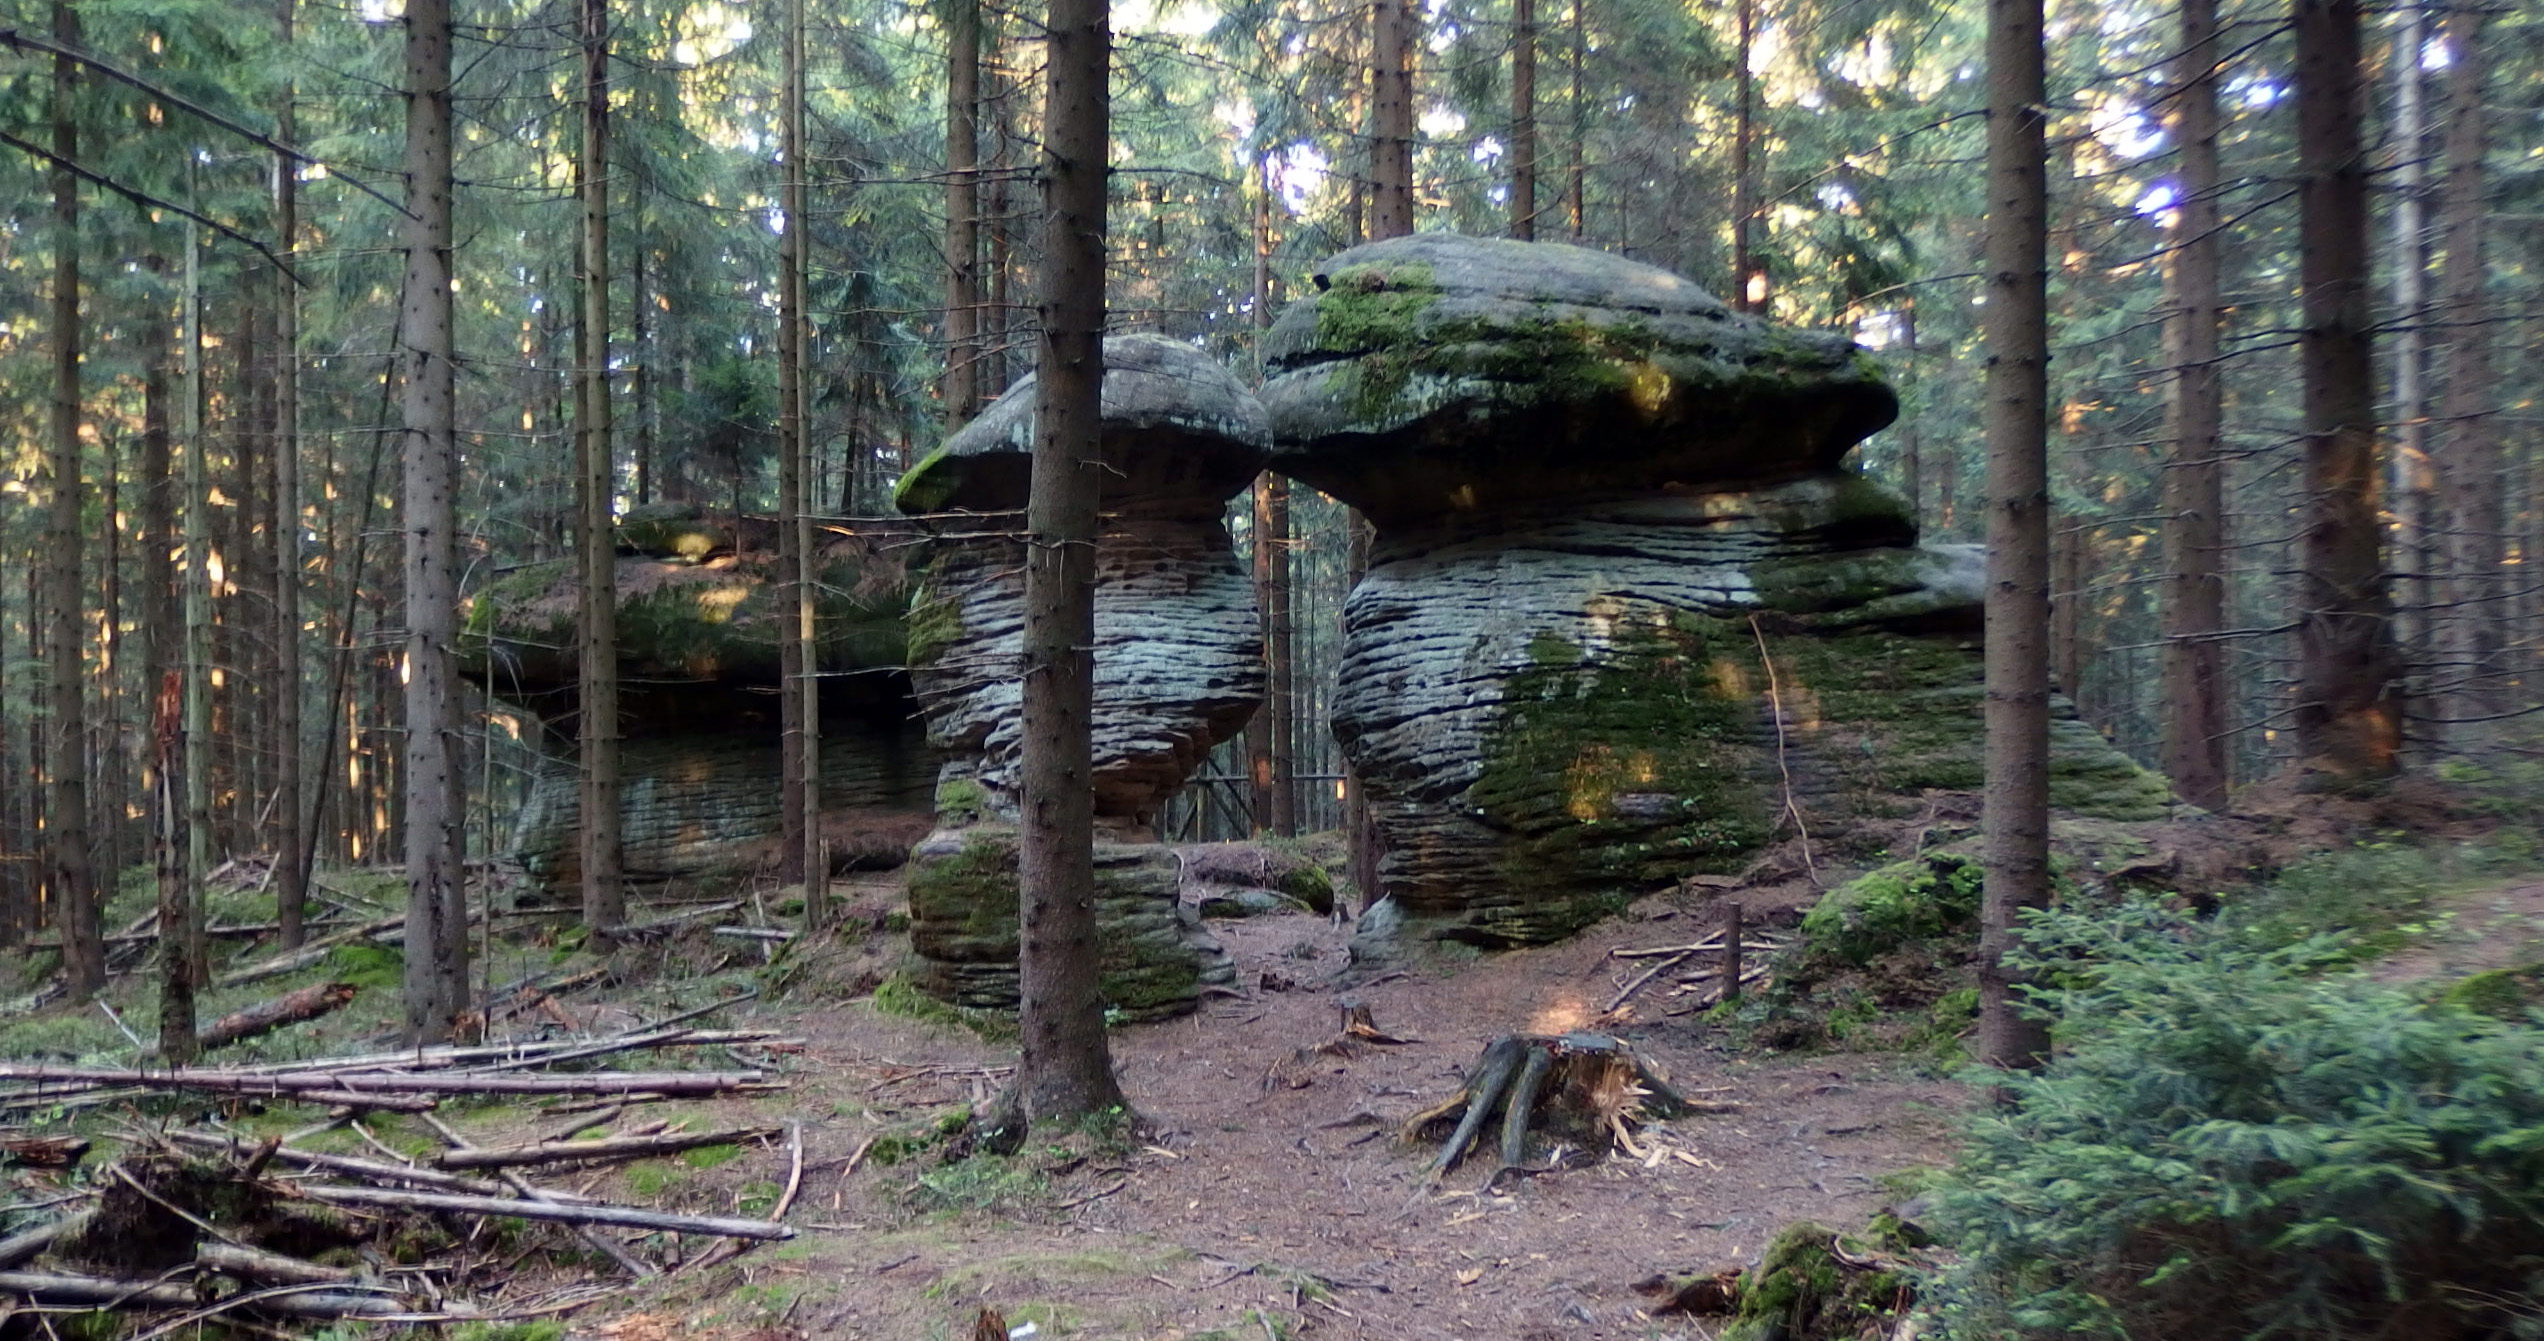 Mushroom Rocks in Stołowe Mountains National Park